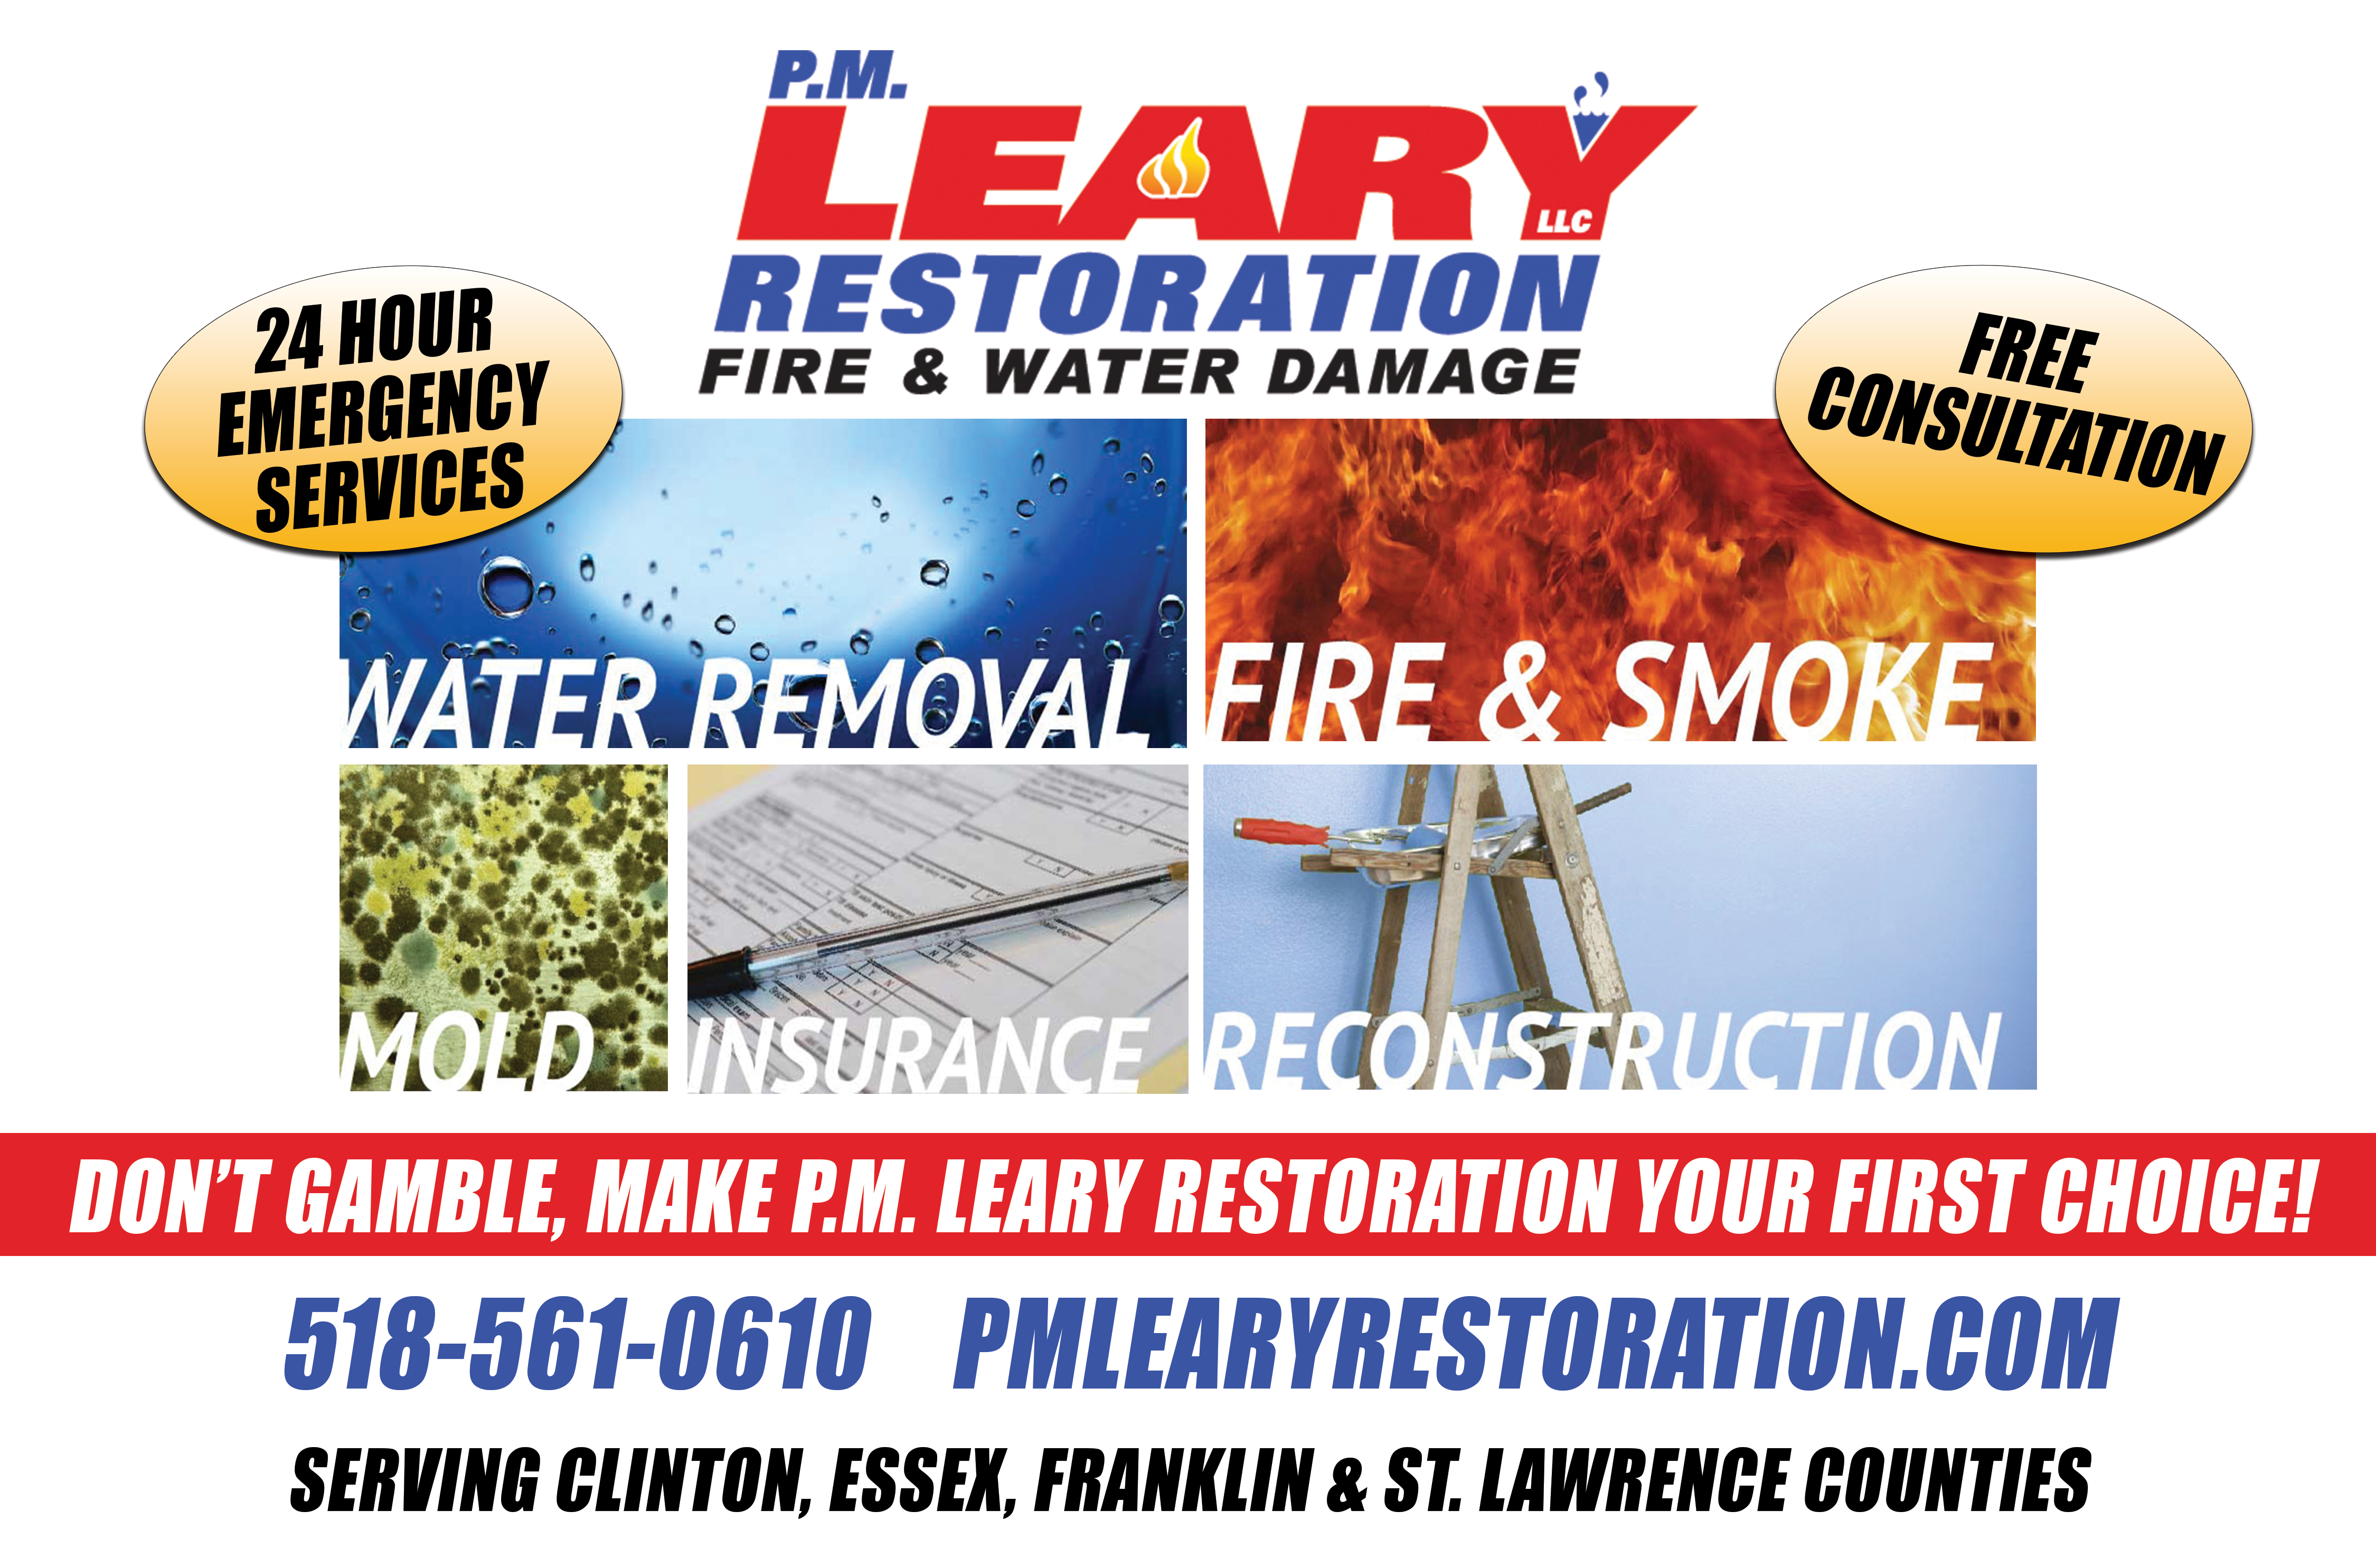 STRICKTLY BUSINESS - PR-PM LEARY RESTORATION - HALF PAGE HORIZONTAL